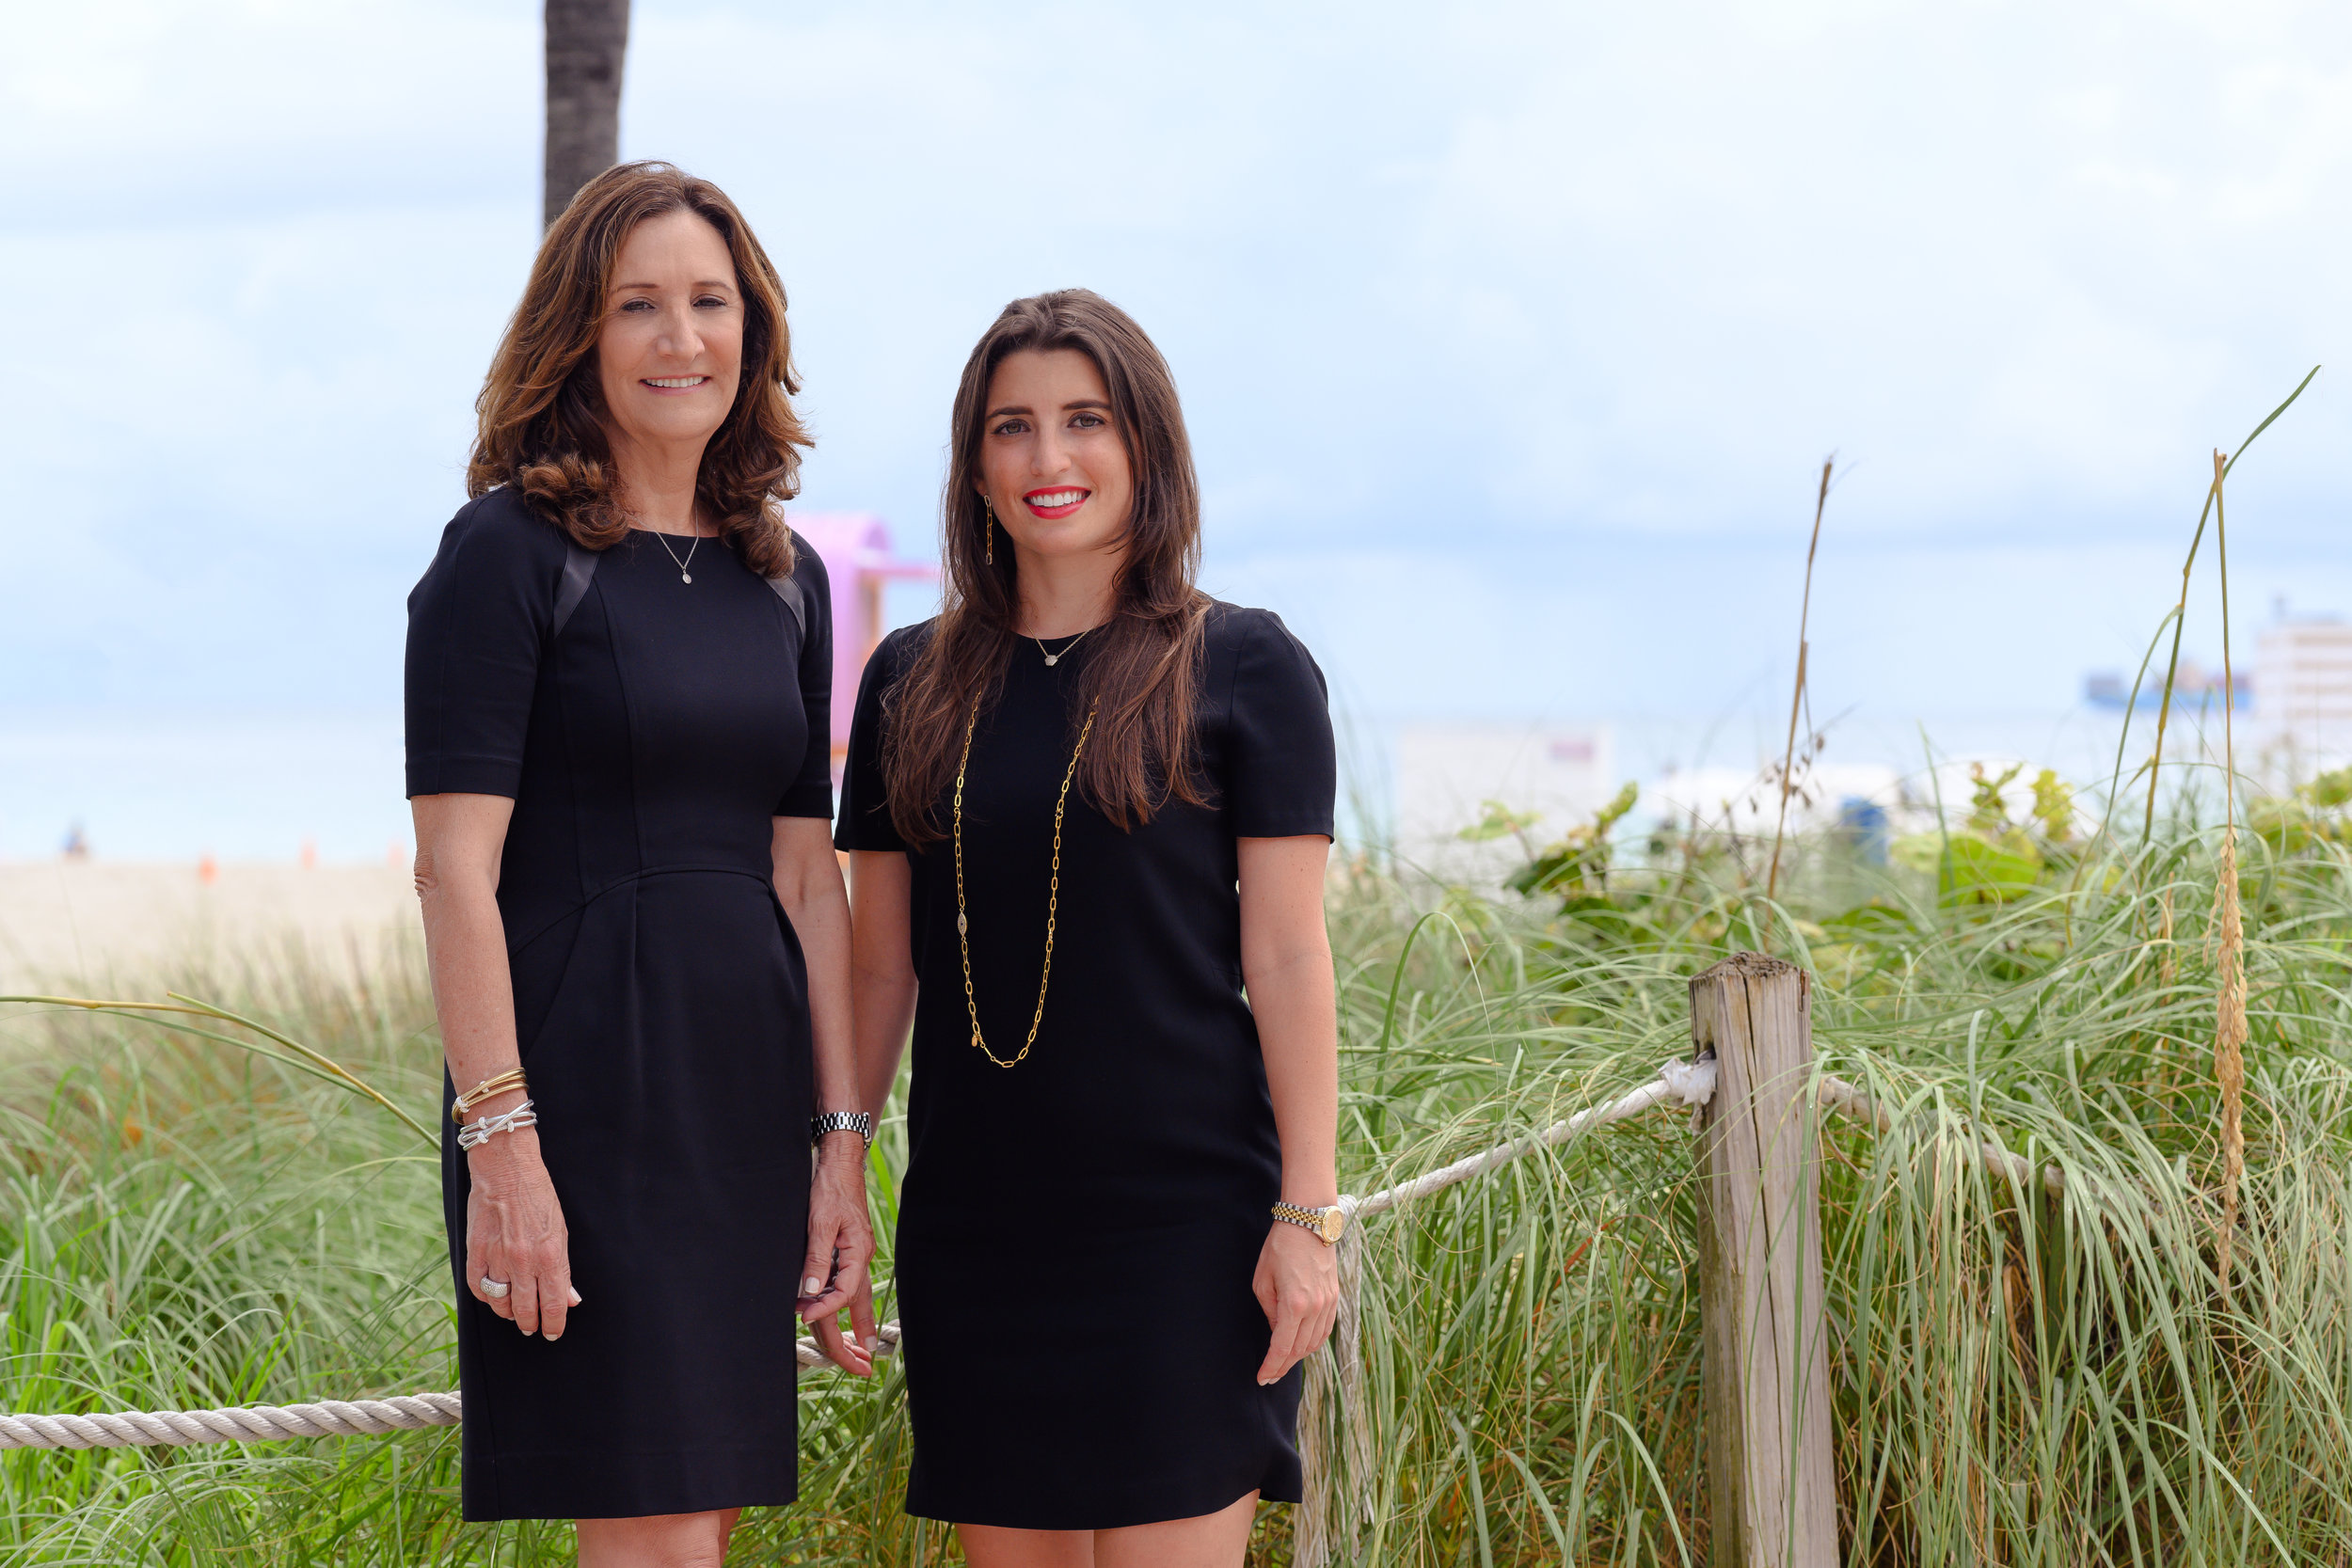 The Schwartz Team - The Schwartz Team is a Mother-Daughter team led by Ida Schwartz and Minette Schwartz. Wall Street Journal ranked team. Ida has 18 years of South Florida real estate experience. Minette holds a BA from UPenn and MBA from Duke. $15M Pre-Construction sold in the last 6 months.MIAMI BEACH | SOUTH BEACH | BAL HARBOUR | SURFSIDEIda Schwartz305.632.7386 ida@theschwartzteamre.comMinette Schwartz305.439.6628minette@theschwartzteamre.com